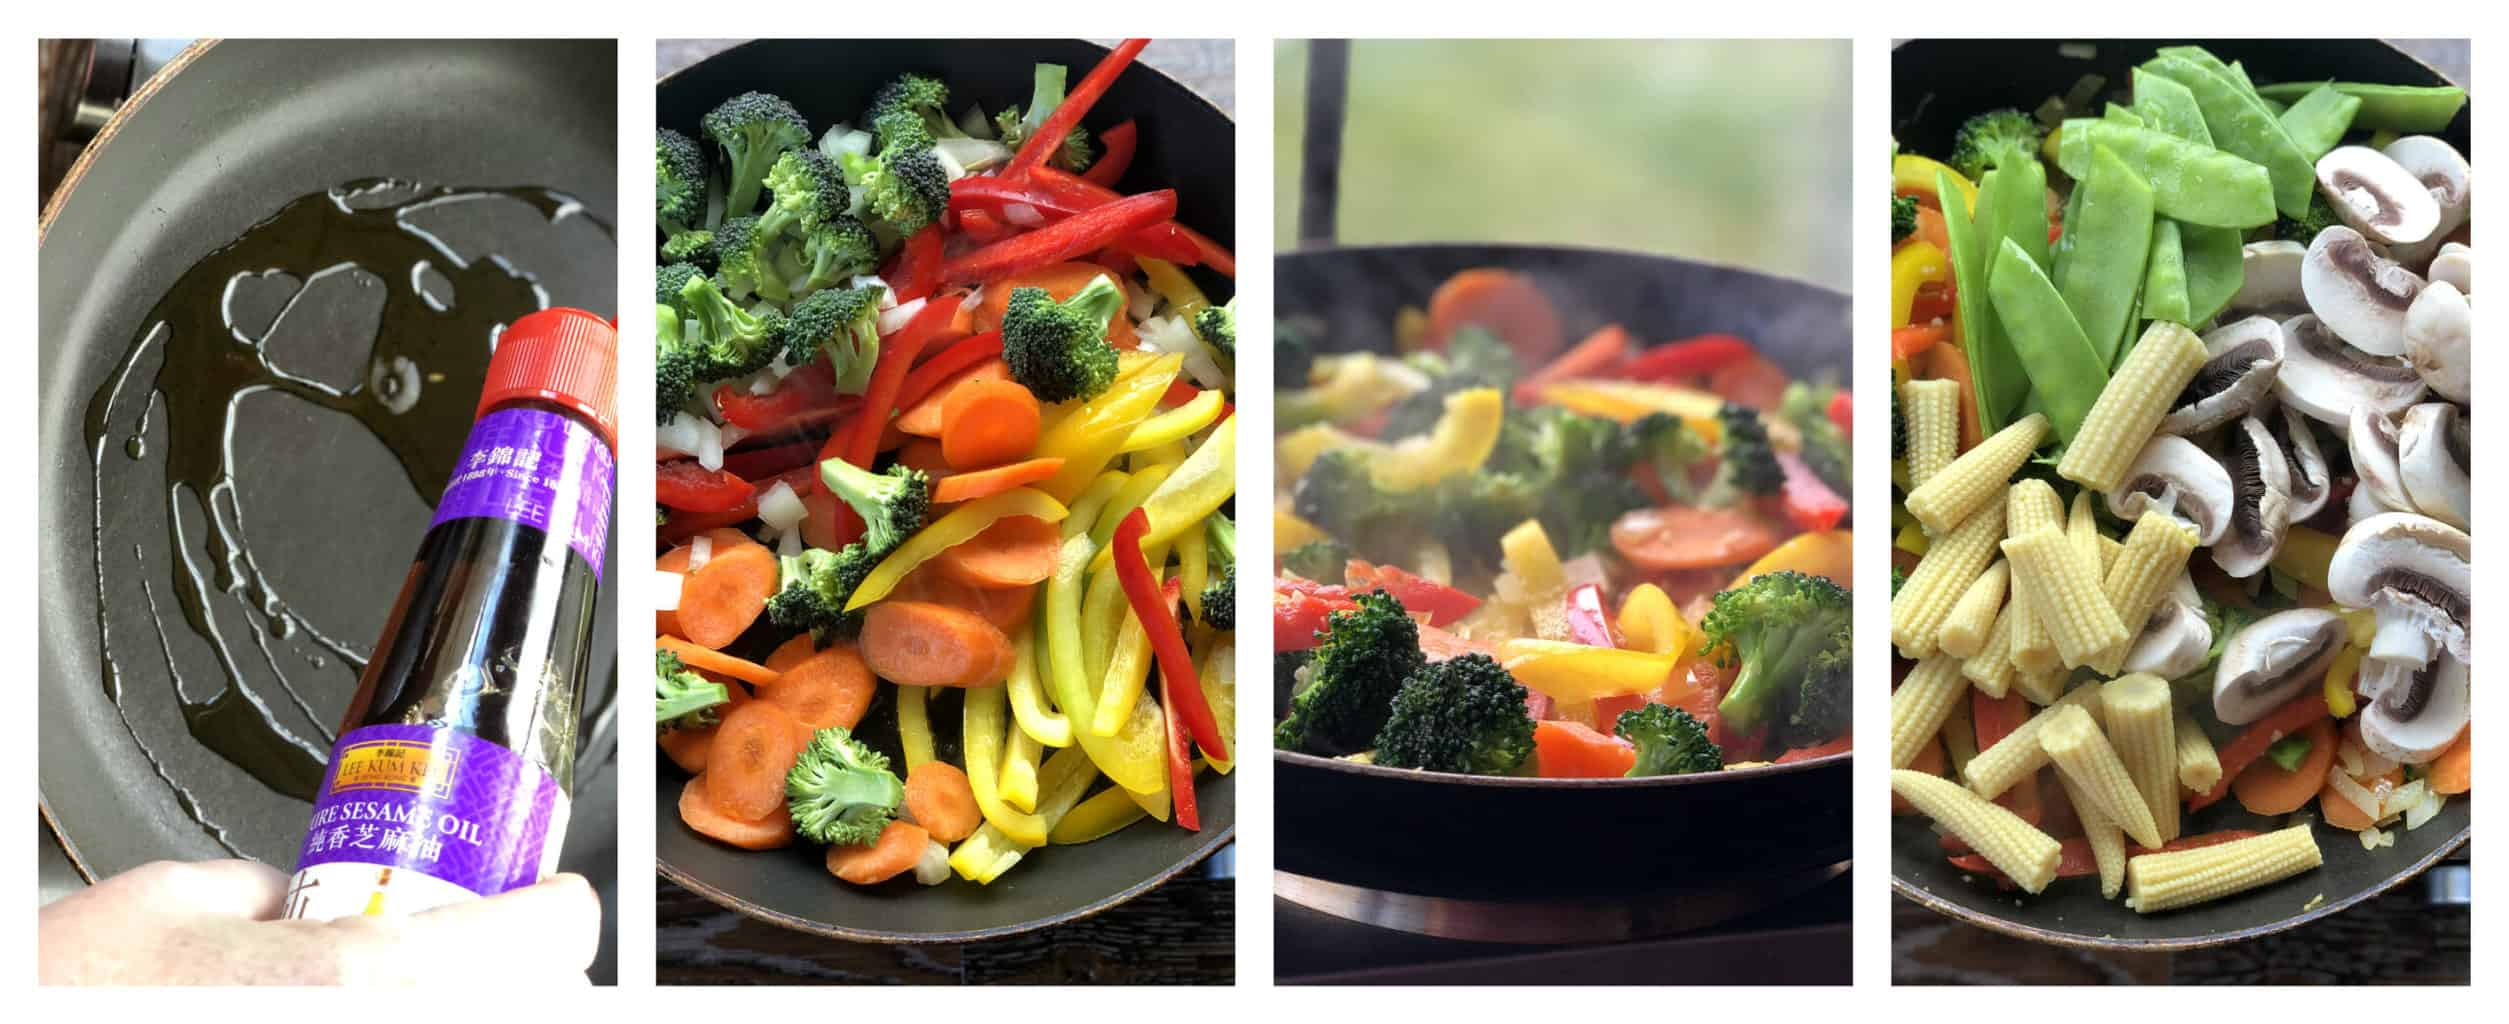 4 images showing step by step process of making a stir fry